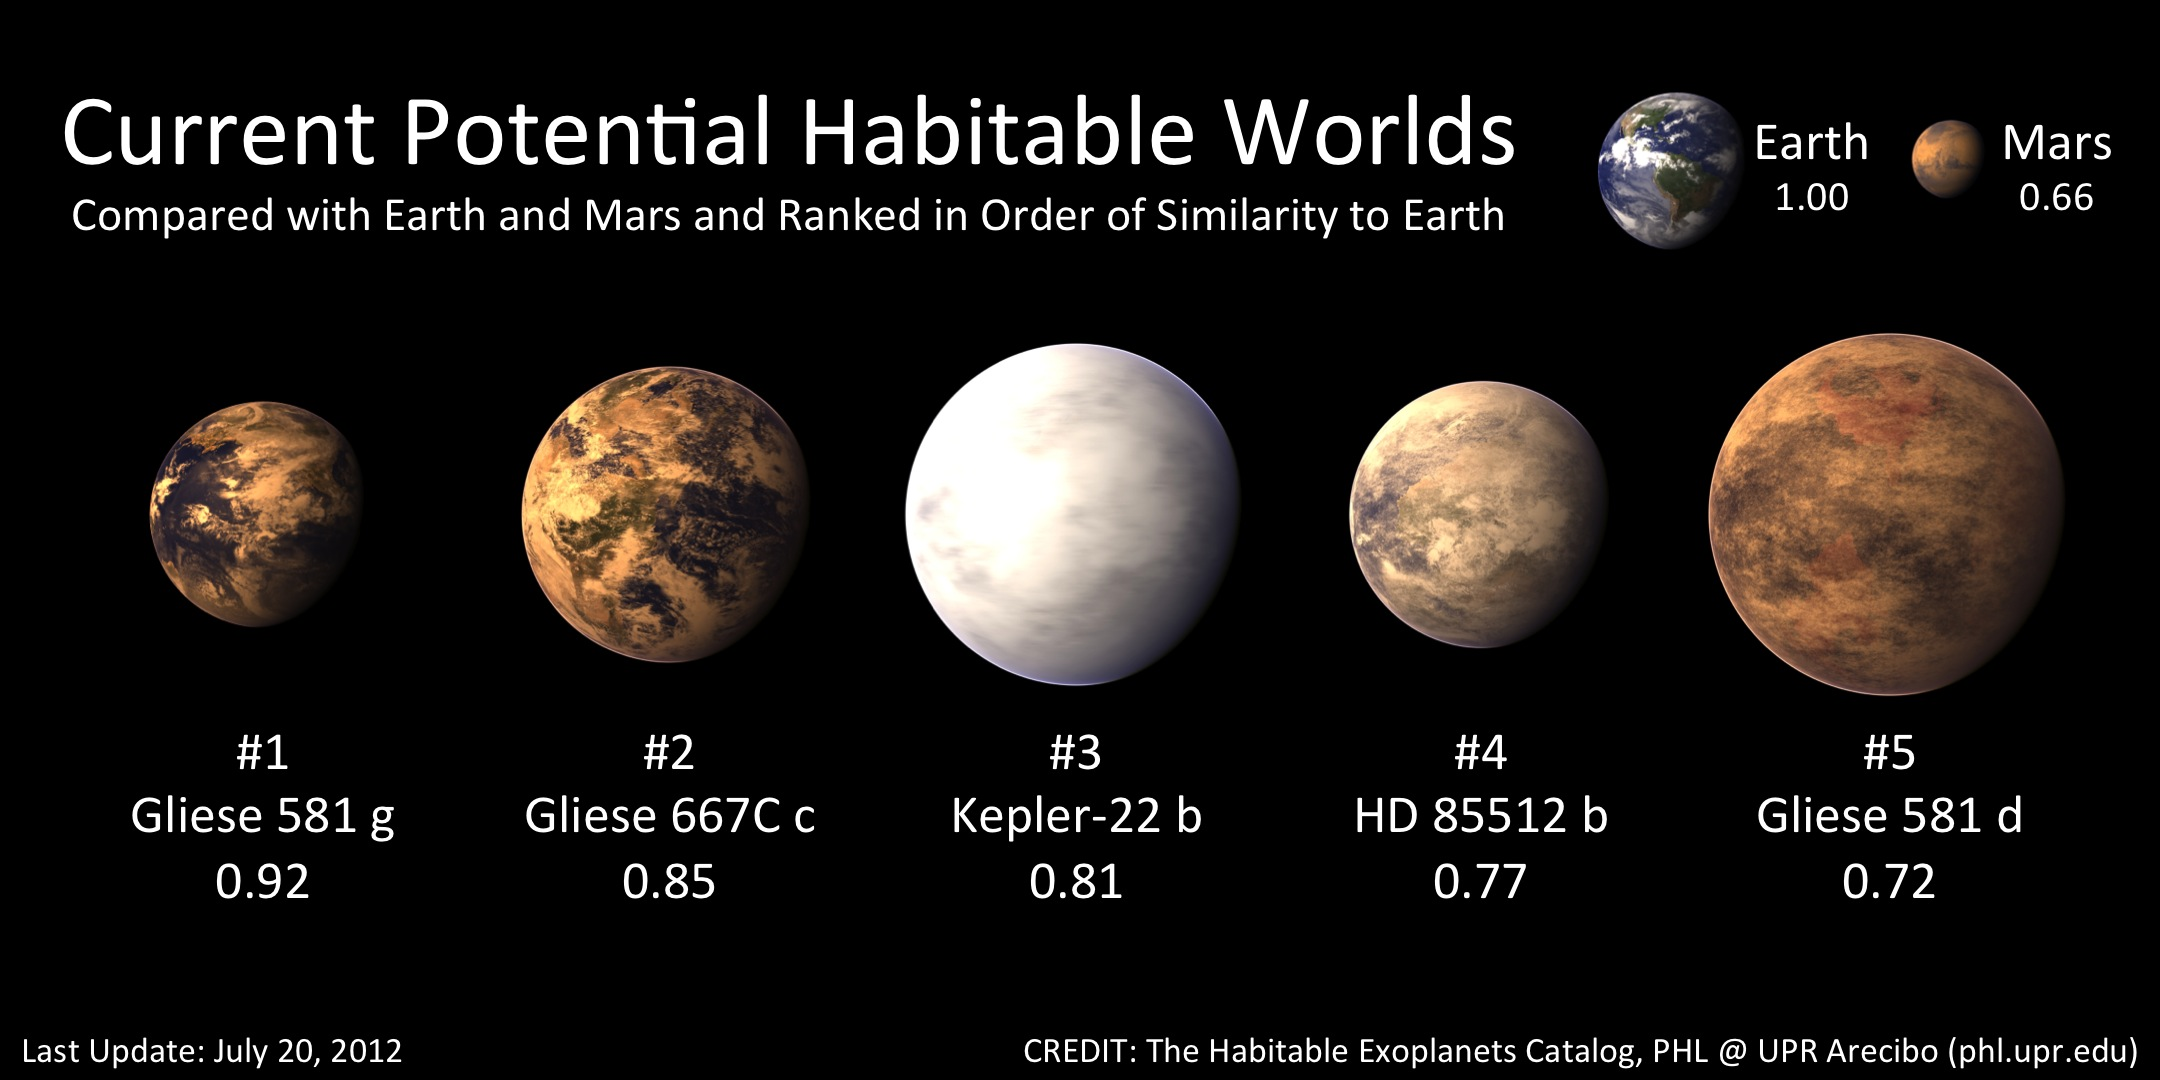 Exoplanet Gliese 581g Makes the Top 5